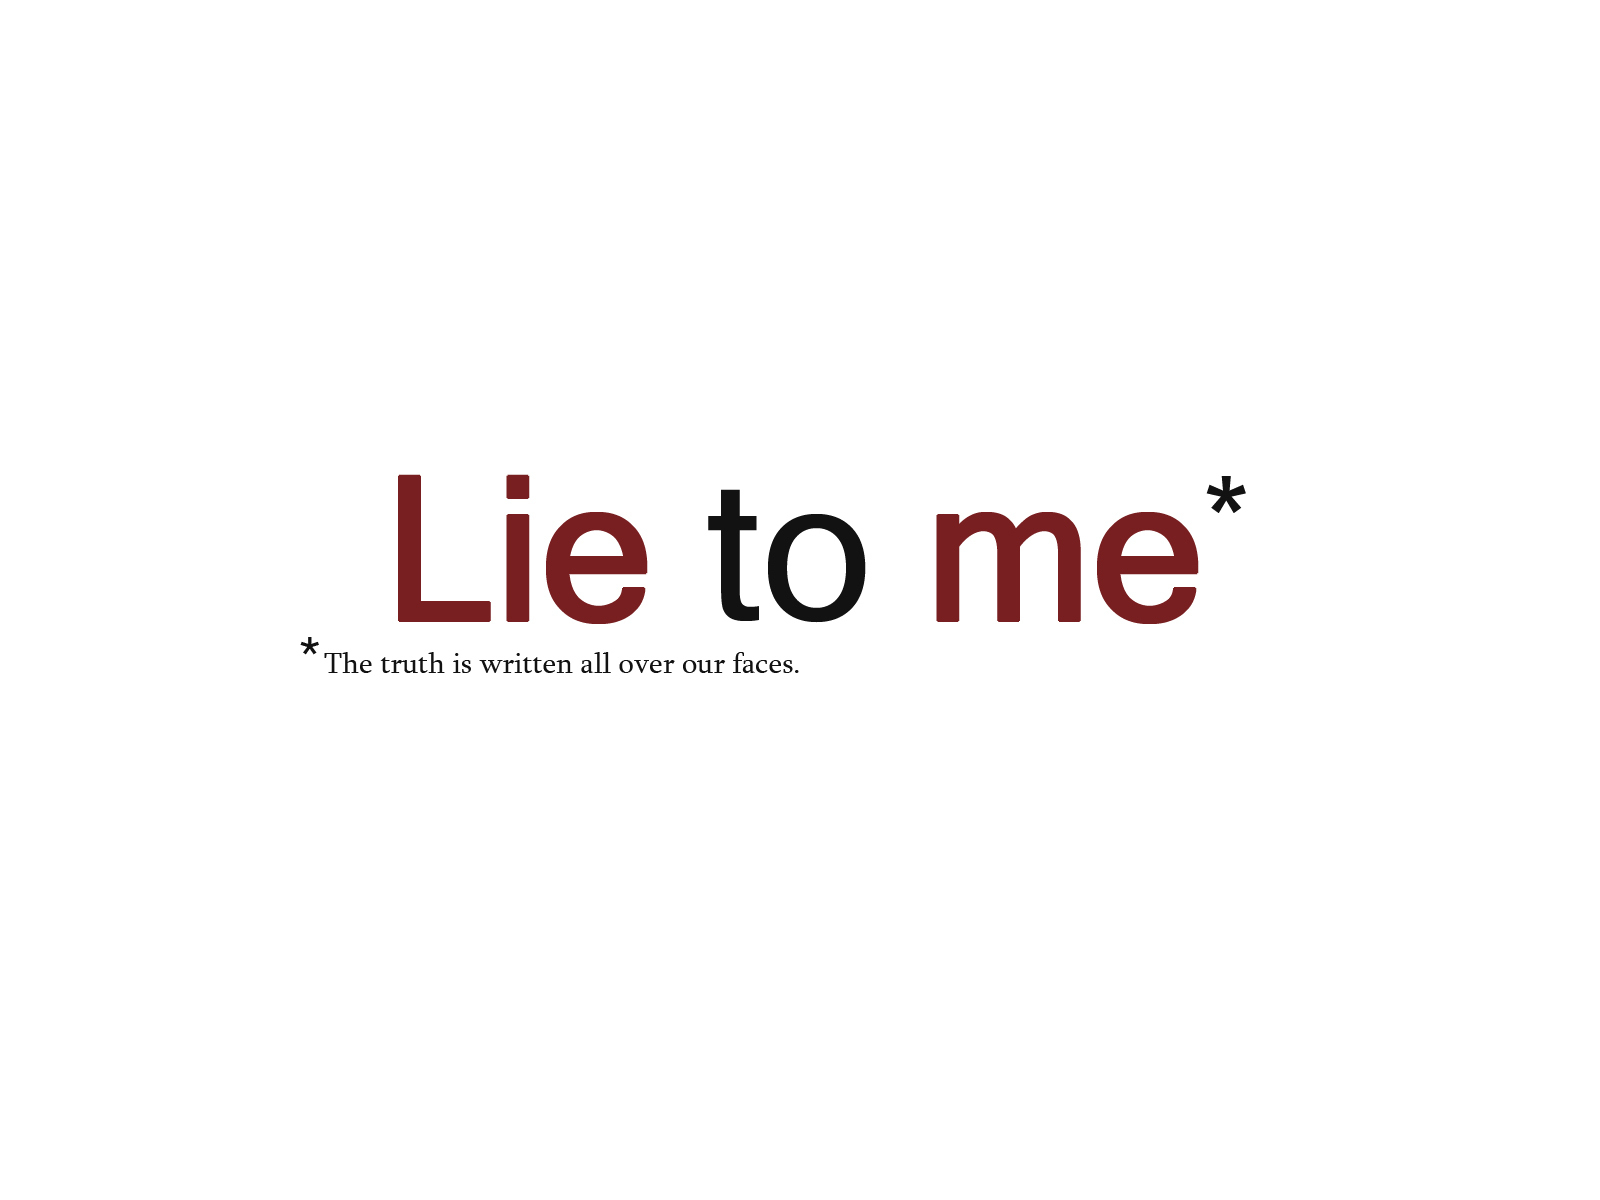 lying ways we lie How to lie with statistics just for interest, we looked at some ways to deceive using statistics the little book, how to lie with statistics was written about 1954.